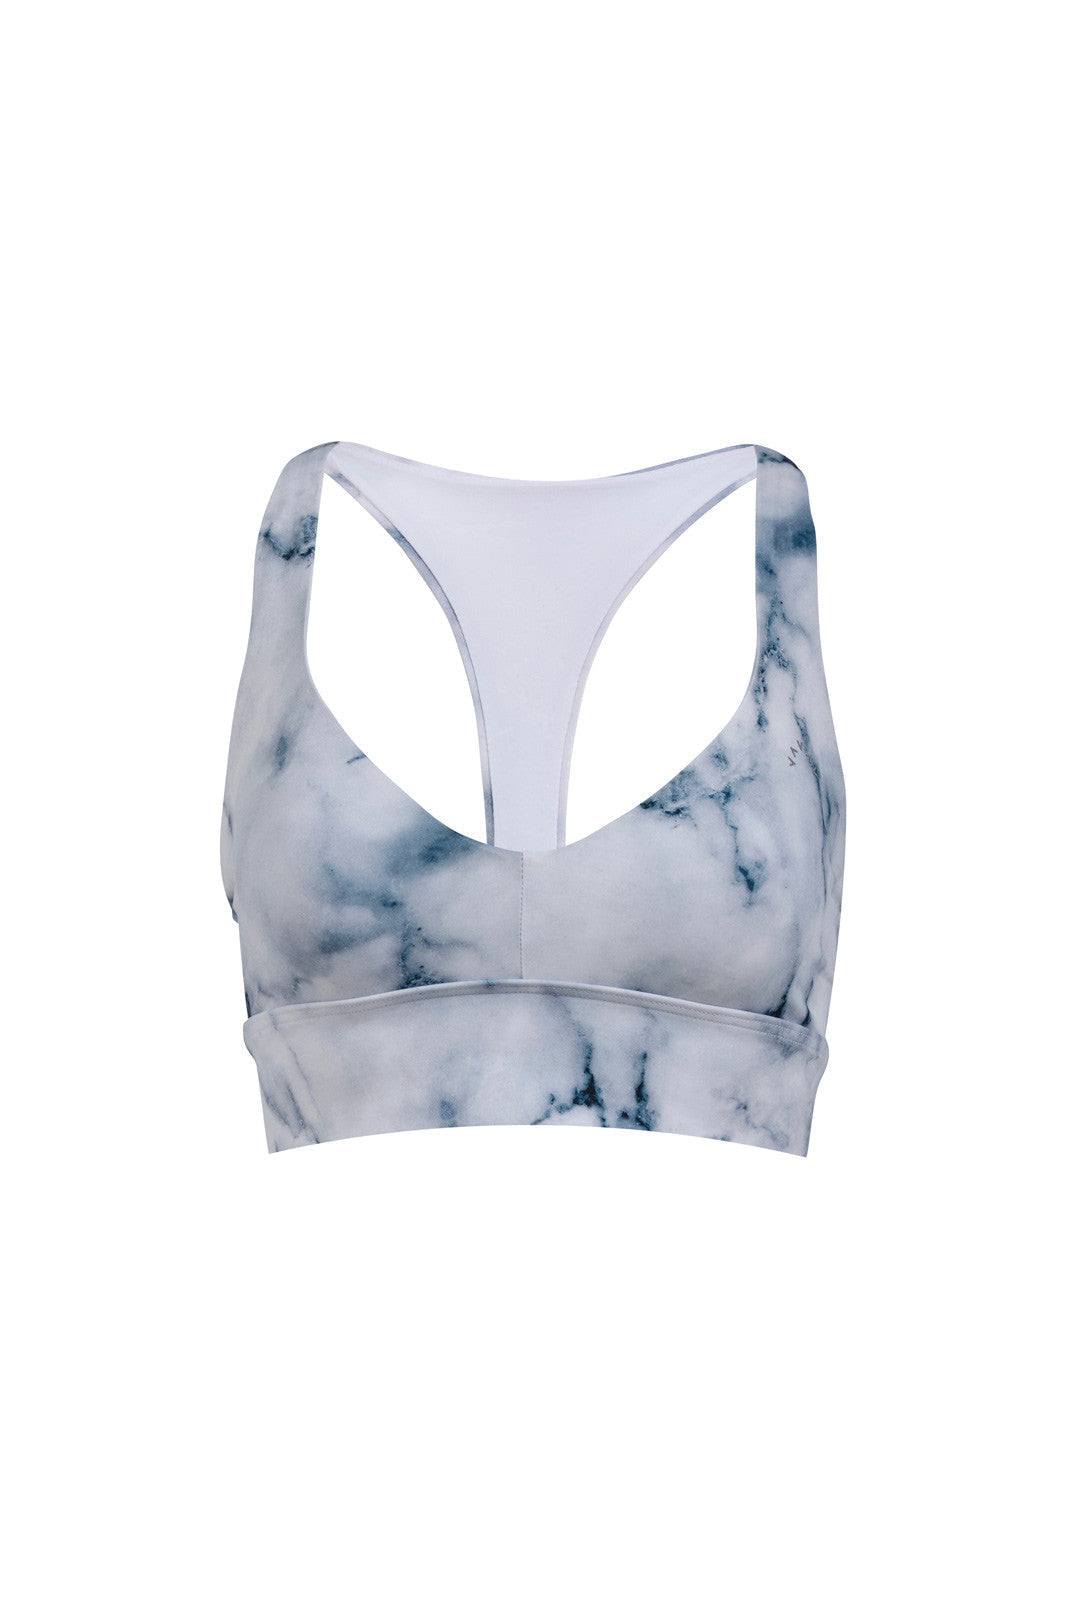 Varley Brighton Sports Bra Teal Marble image 3 - The Sports Edit